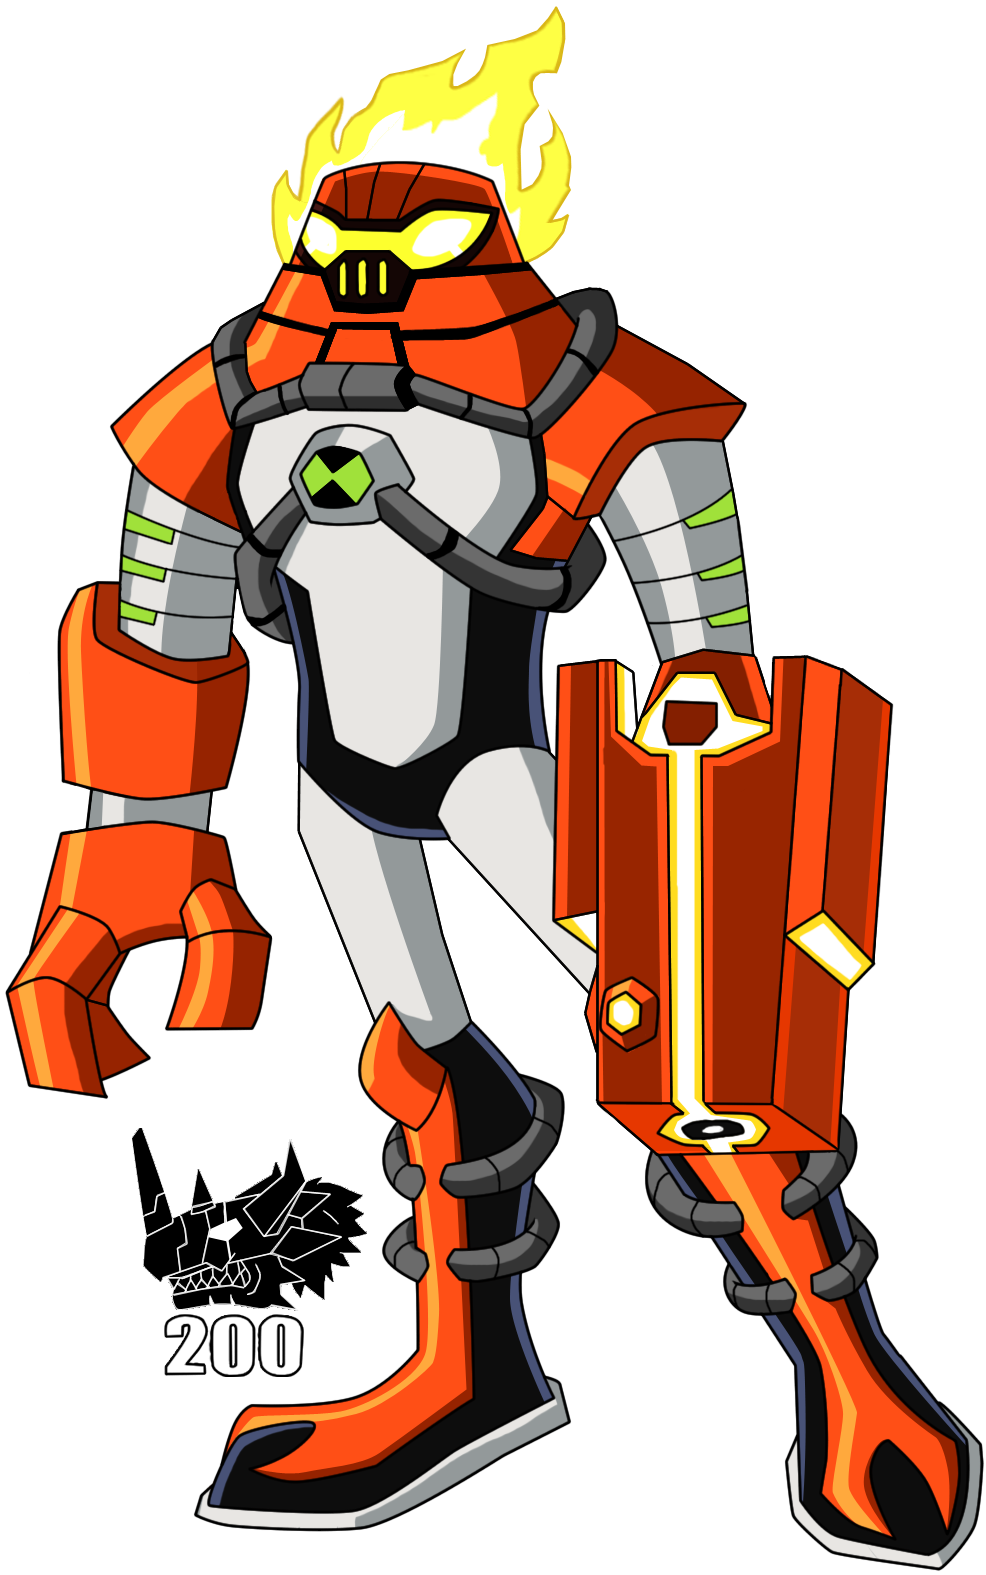 Ben Ten Omniverse Coloring Pages Coloring Pages For All Ages Coloring Pages Ben 10 Dragon Ball Super Art